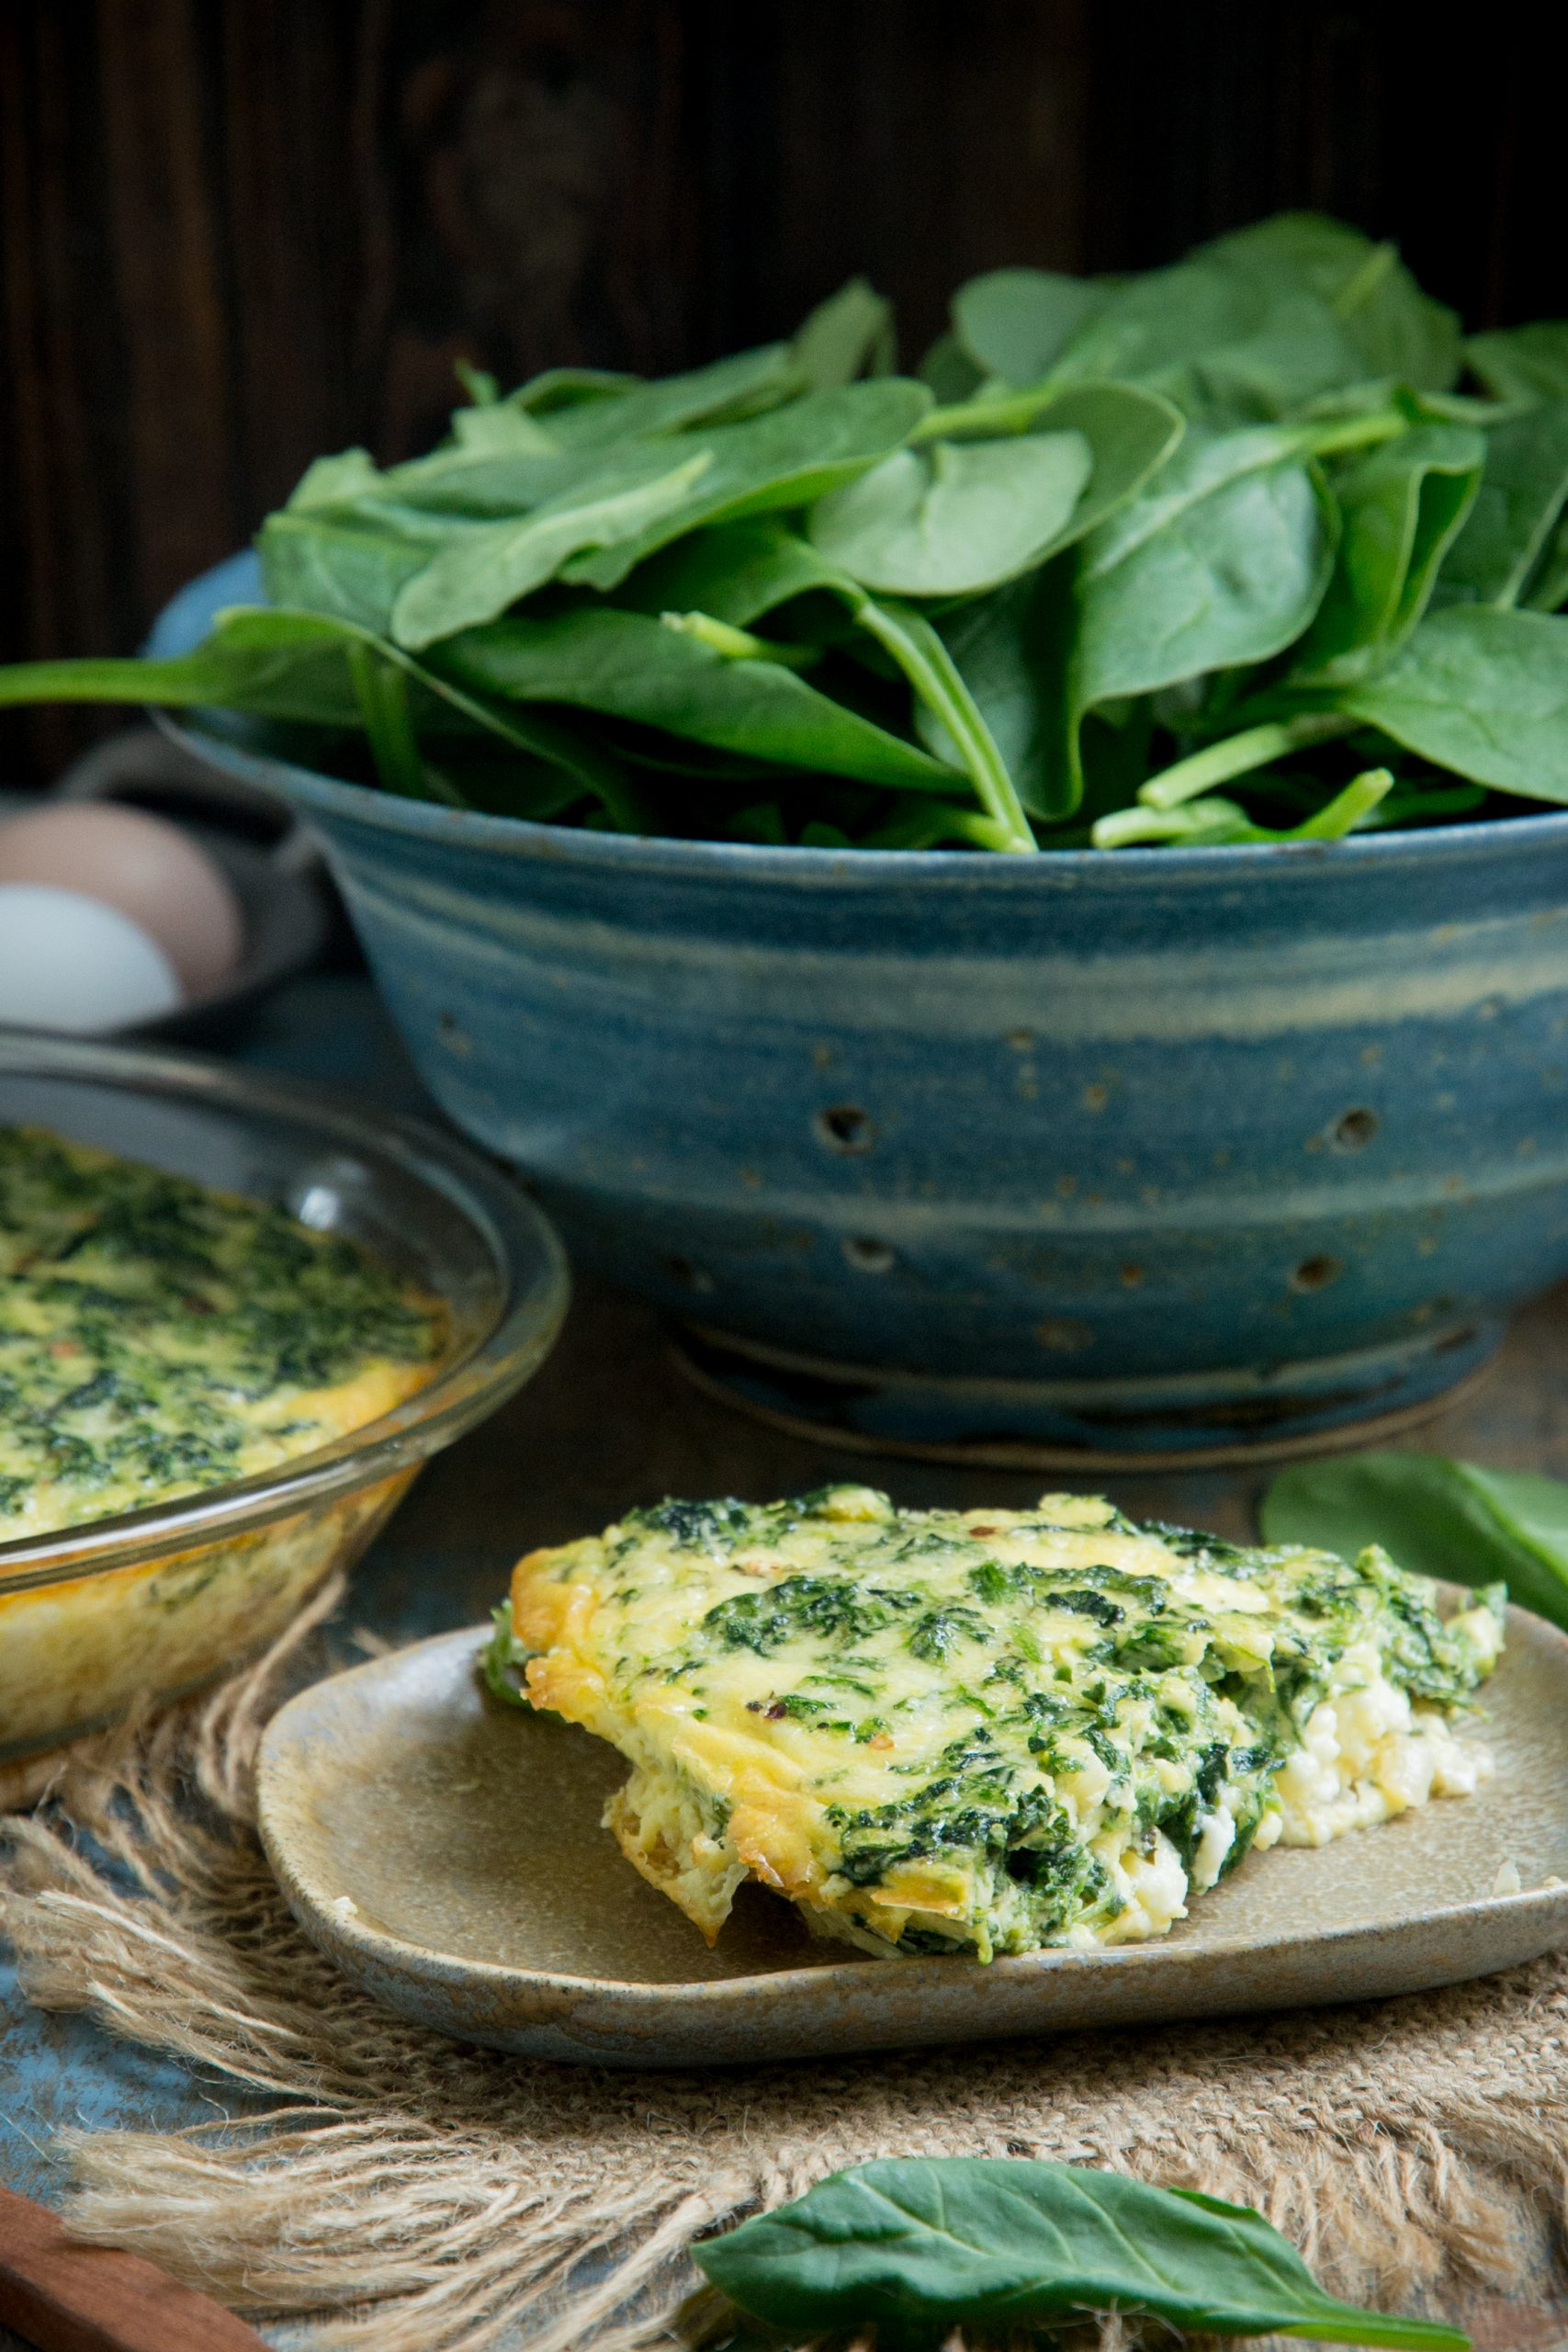 A slice of crustless spinach quiche in front of a bowl of spinach